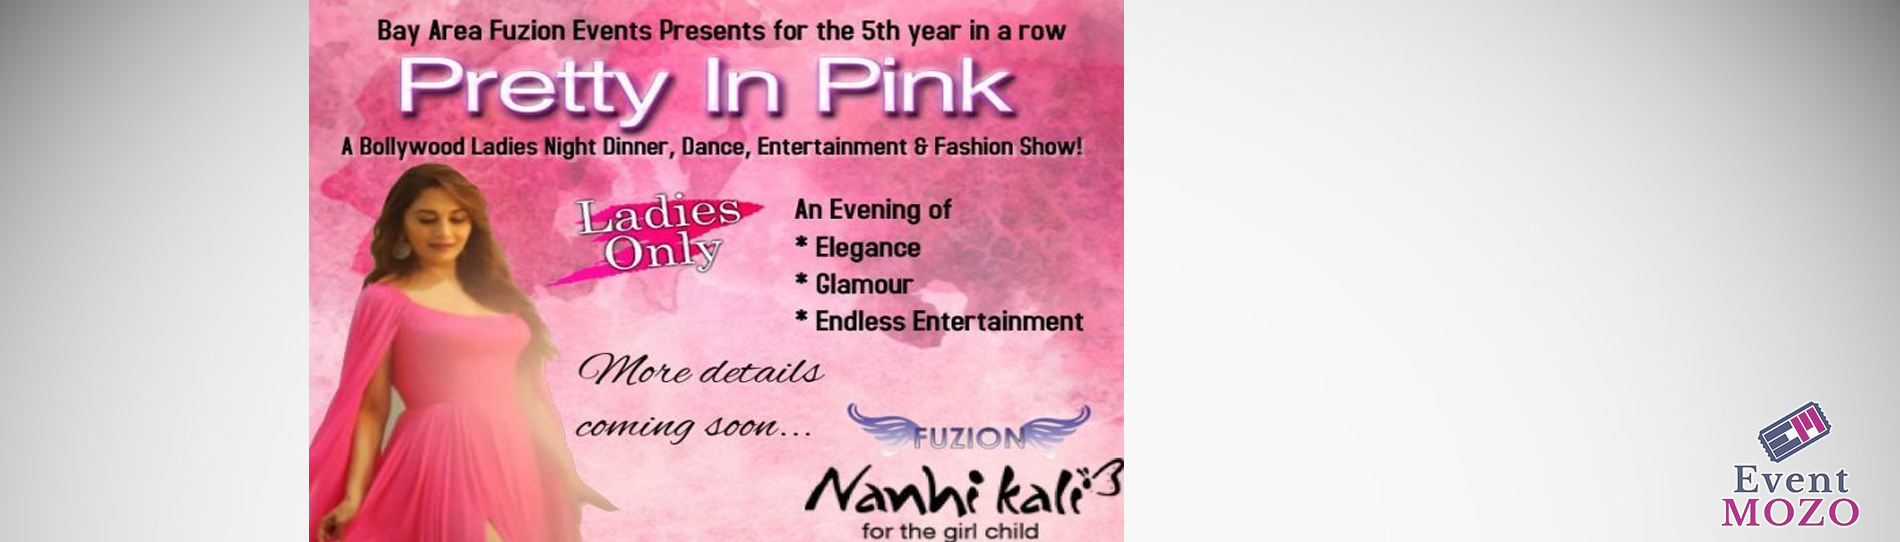 EventMozo Pretty In Pink-A Bollywood Ladies Night Dinner, Dance, Fas....